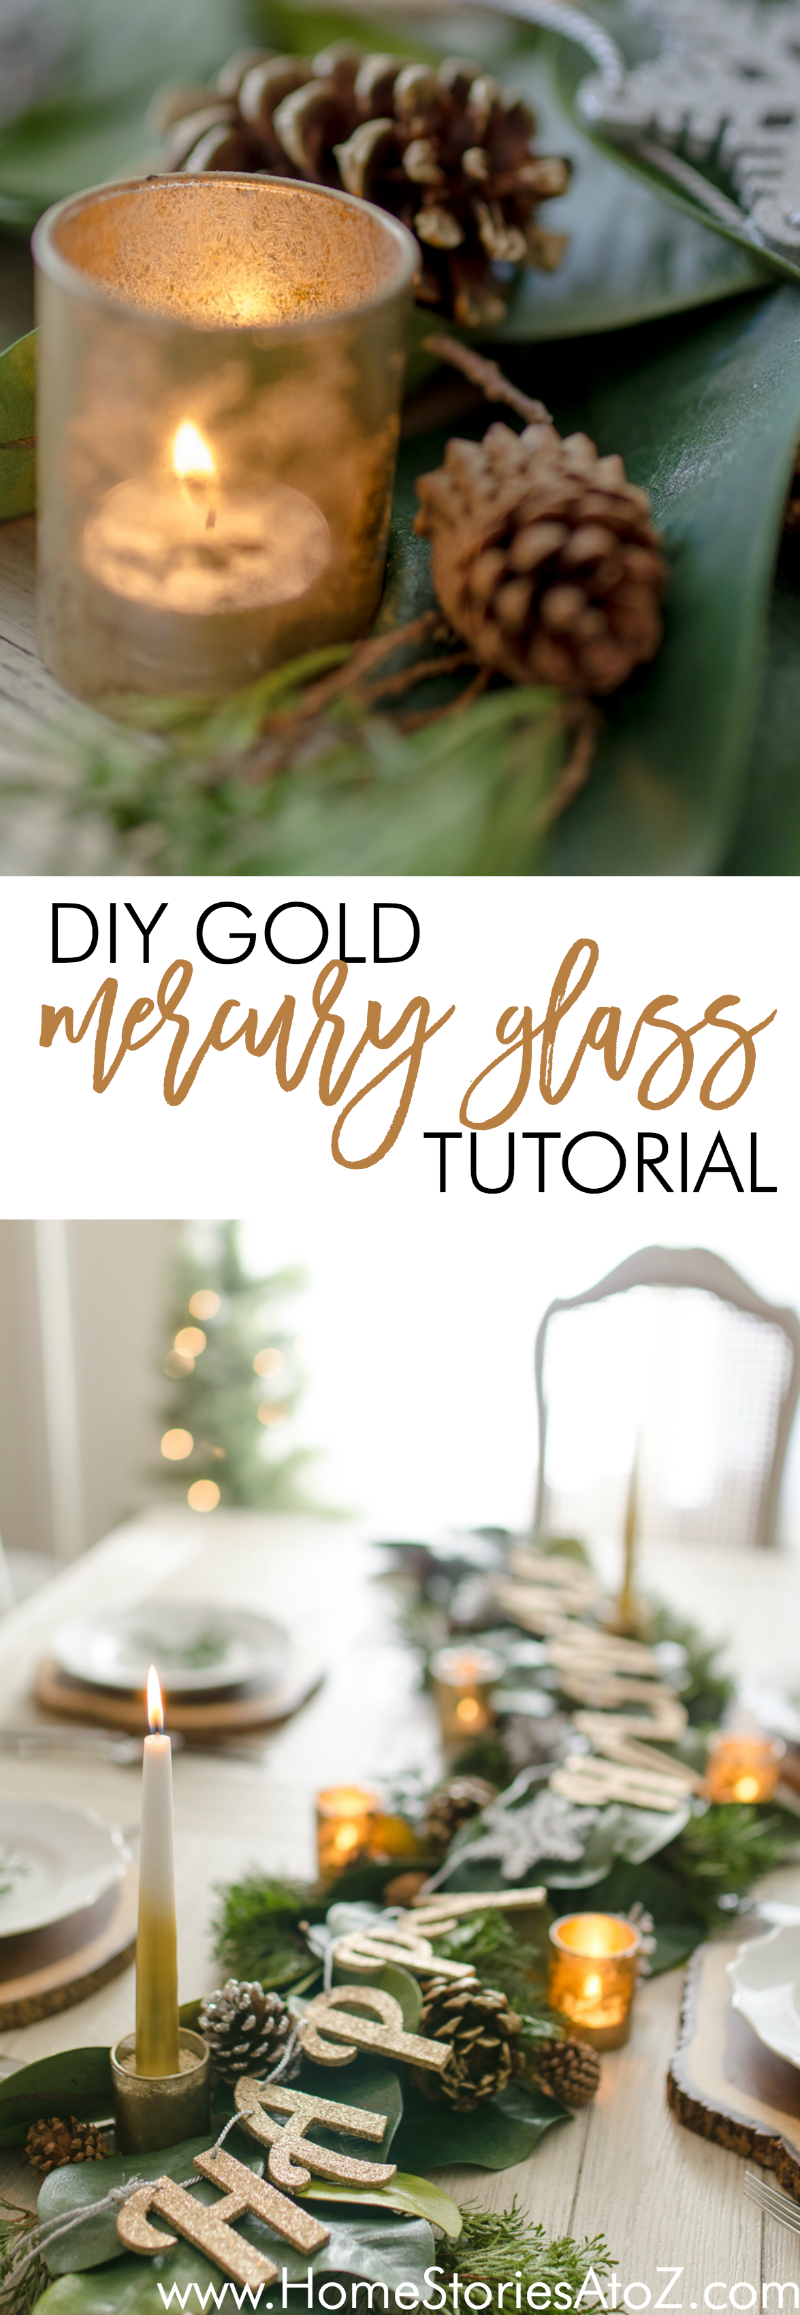 diy-mercury-glass-tutorial